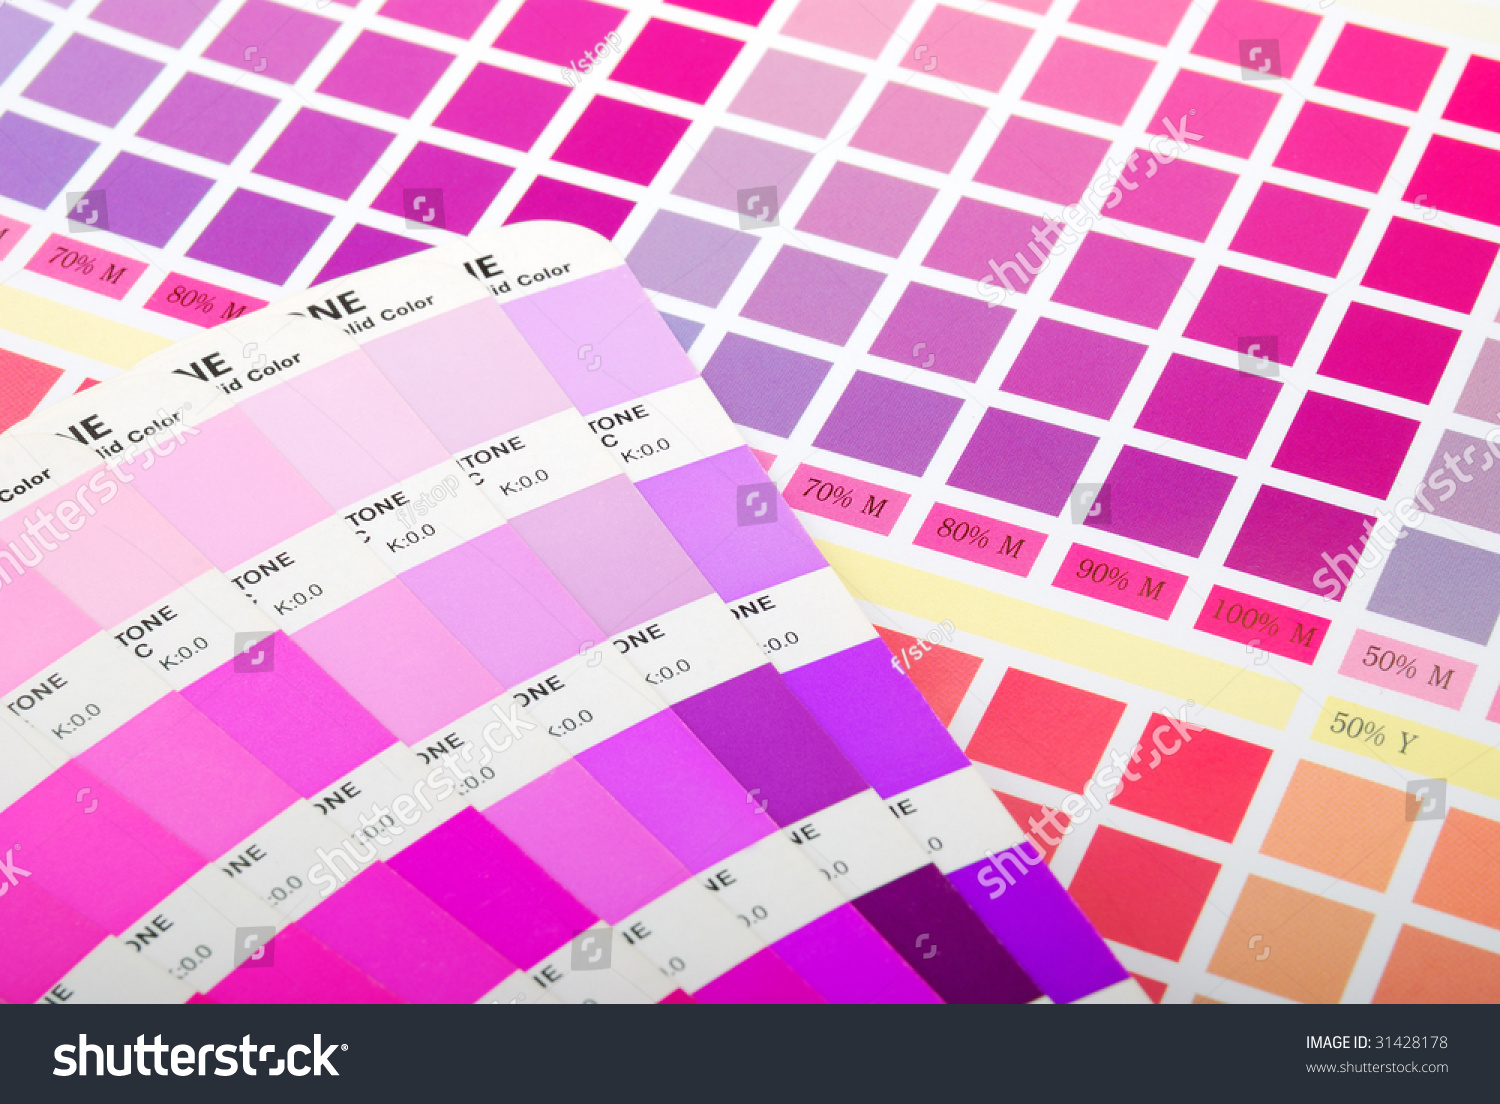 Color guide on printed color chart stock photo 31428178 shutterstock color guide on printed color chart purple pink and red nvjuhfo Image collections